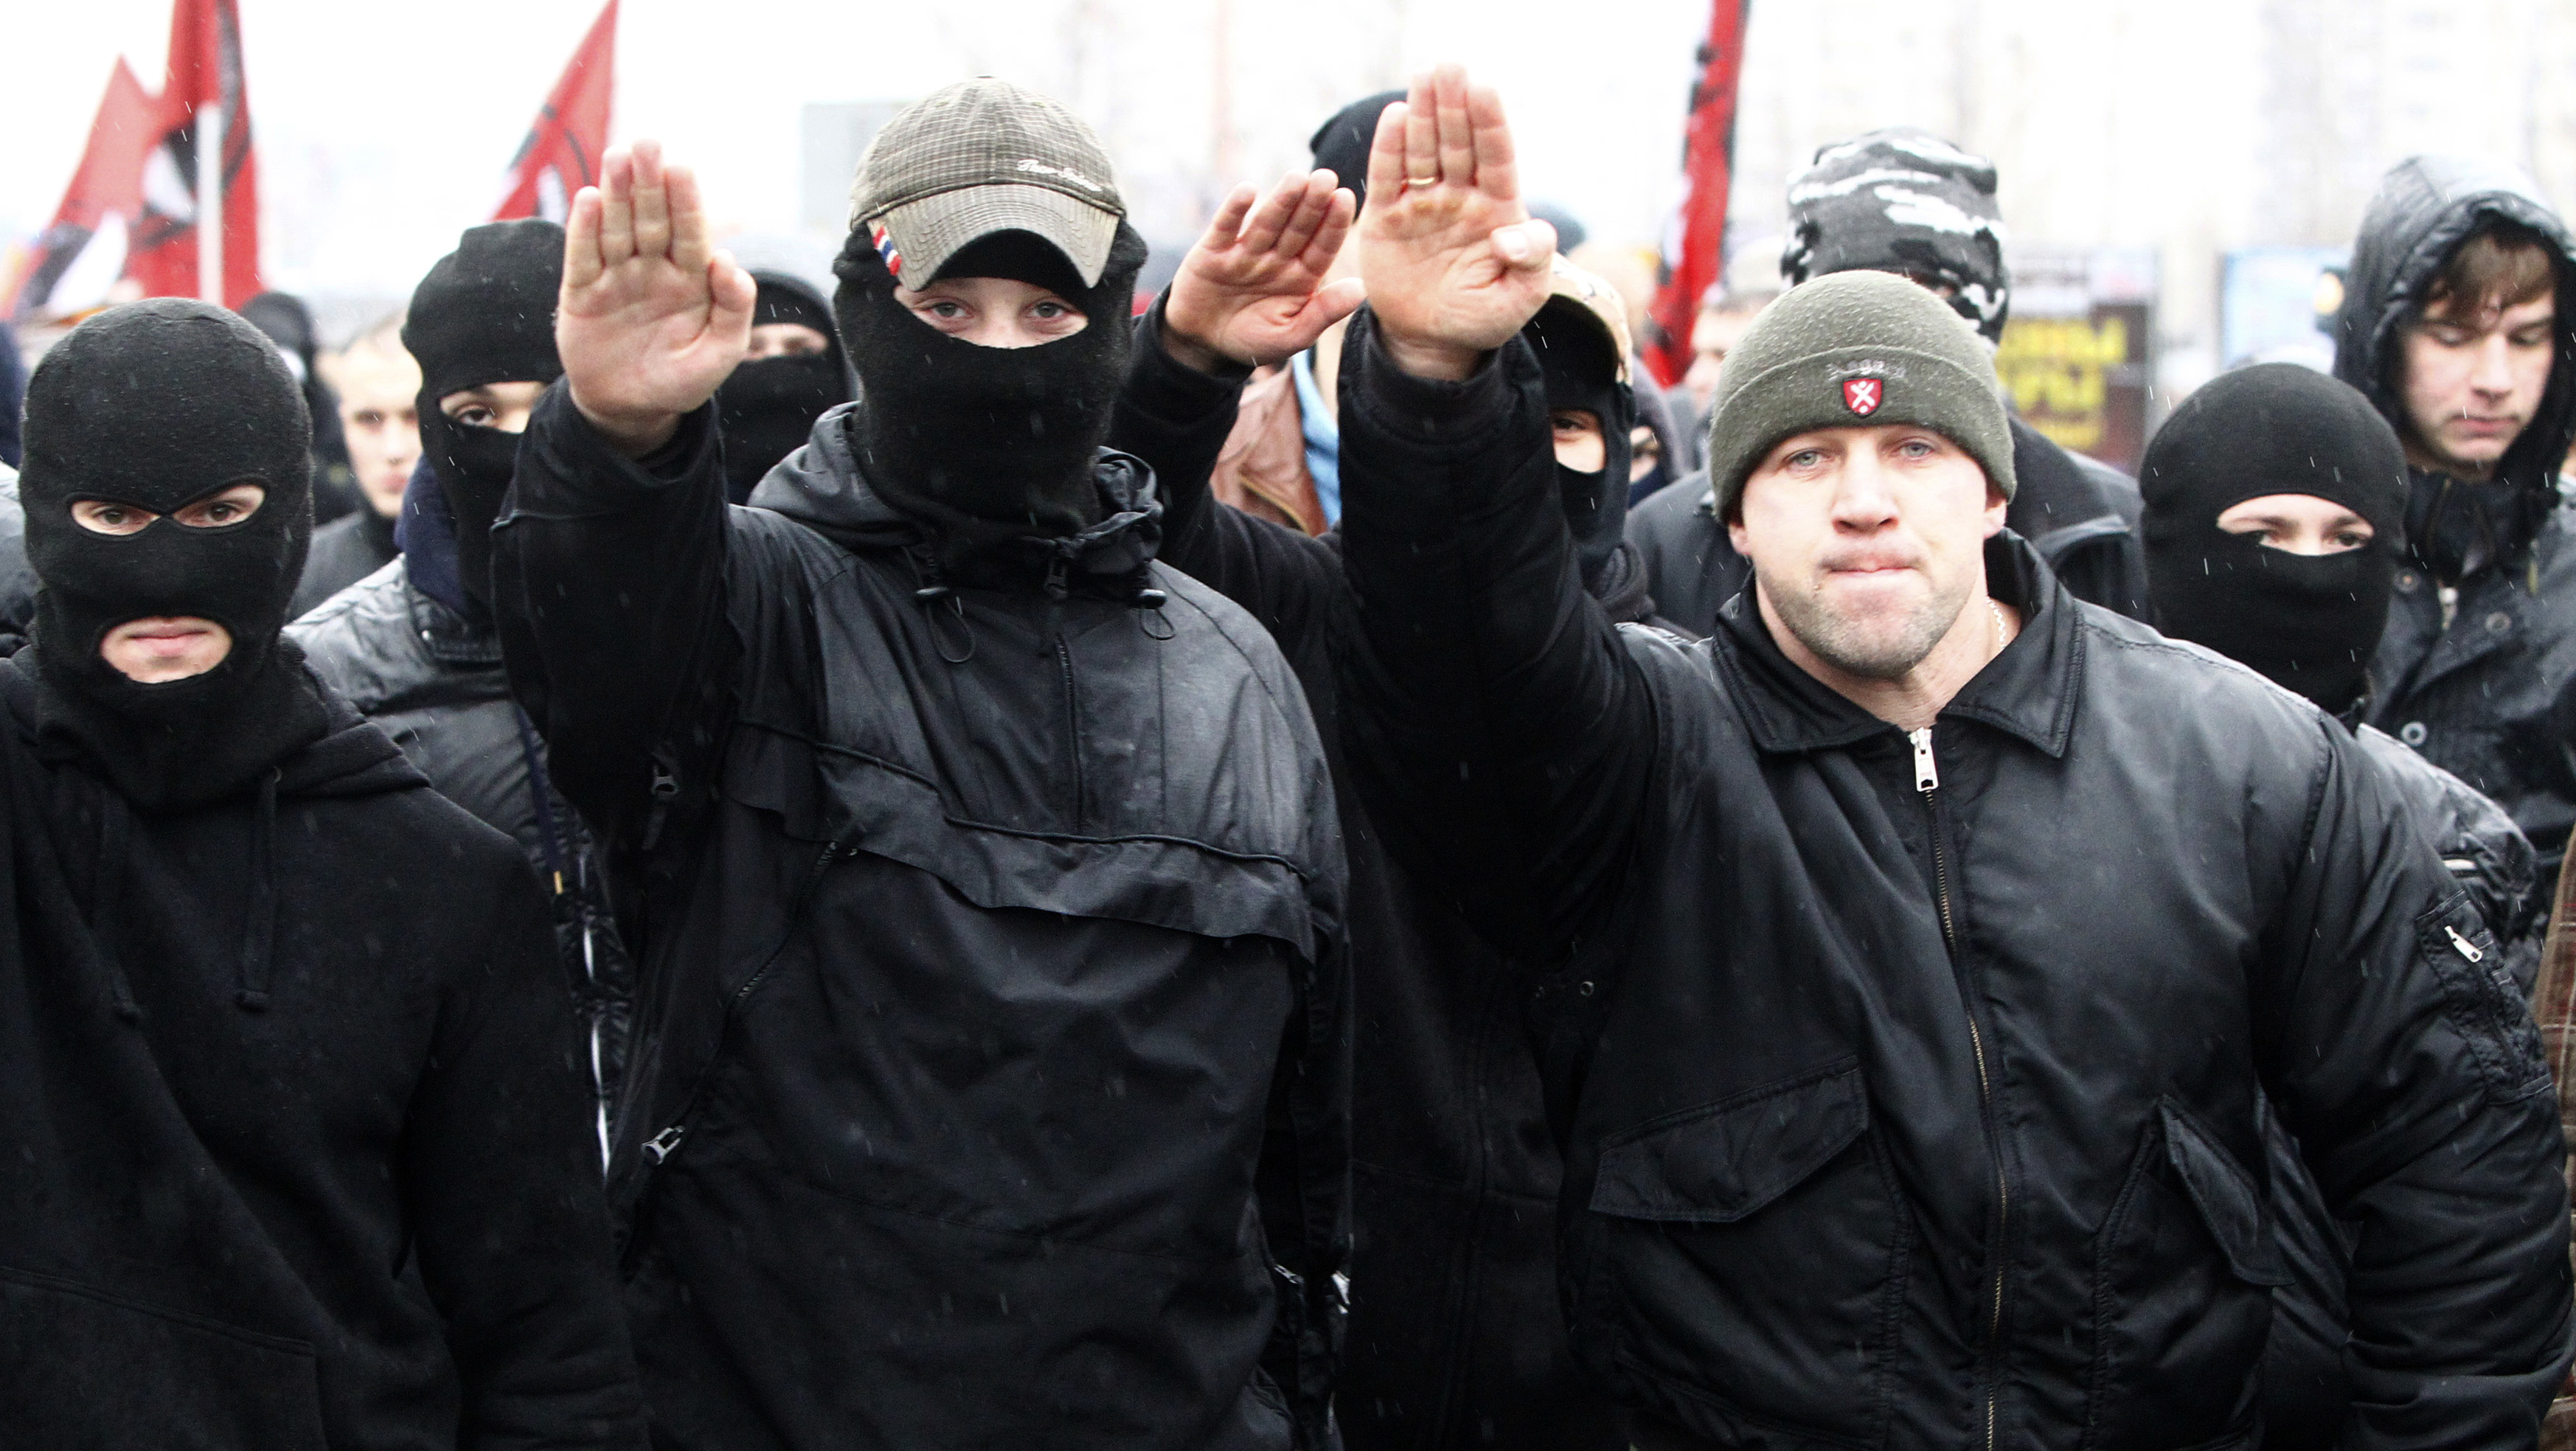 Russian ultra-nationalists march during a demonstration on the outskirts of Moscow, November 4, 2010. Russia marks the Day of People's Unity on November 4 when people celebrate the defeat of Polish invaders in 1612 and replace a communist celebration of the 1917 revolution.